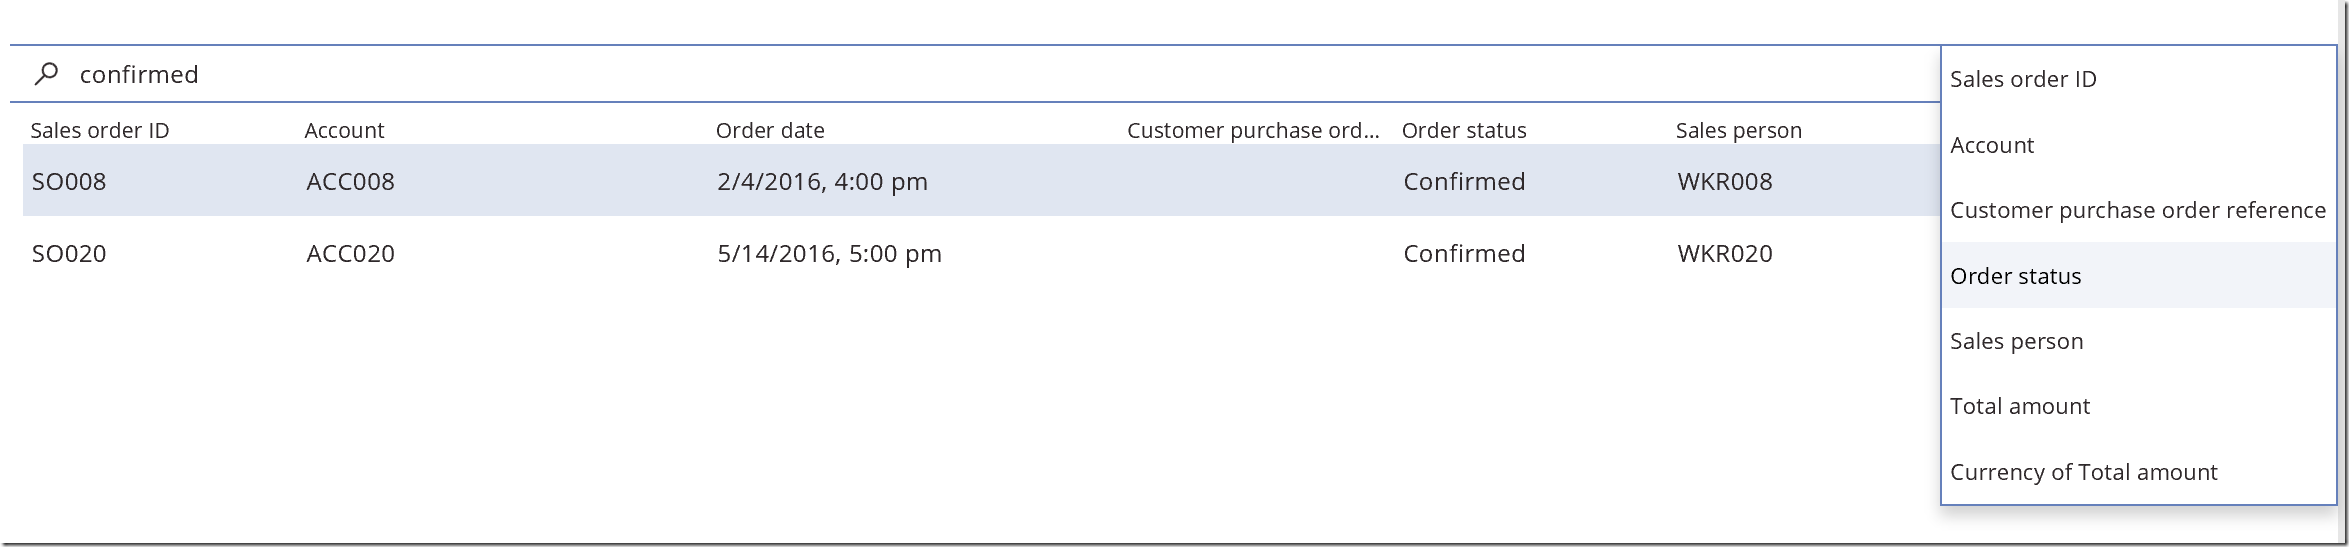 Searching a list of sales orders displayed in an entity form control to find sales orders with Order status = Confirmed.